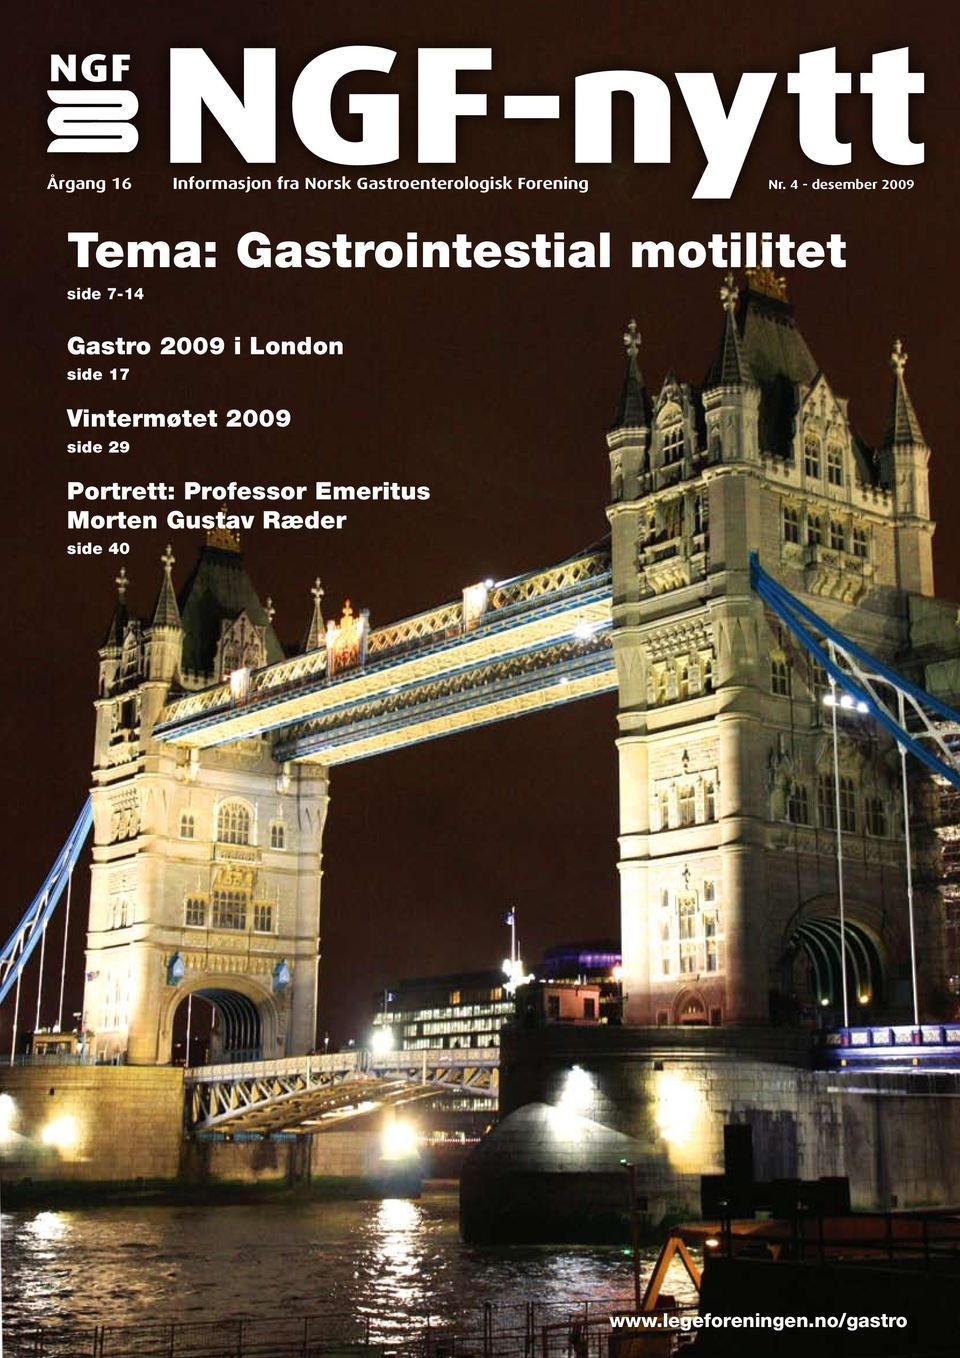 Gastro 2009 i London side 17 Vintermøtet 2009 side 29 Portrett: